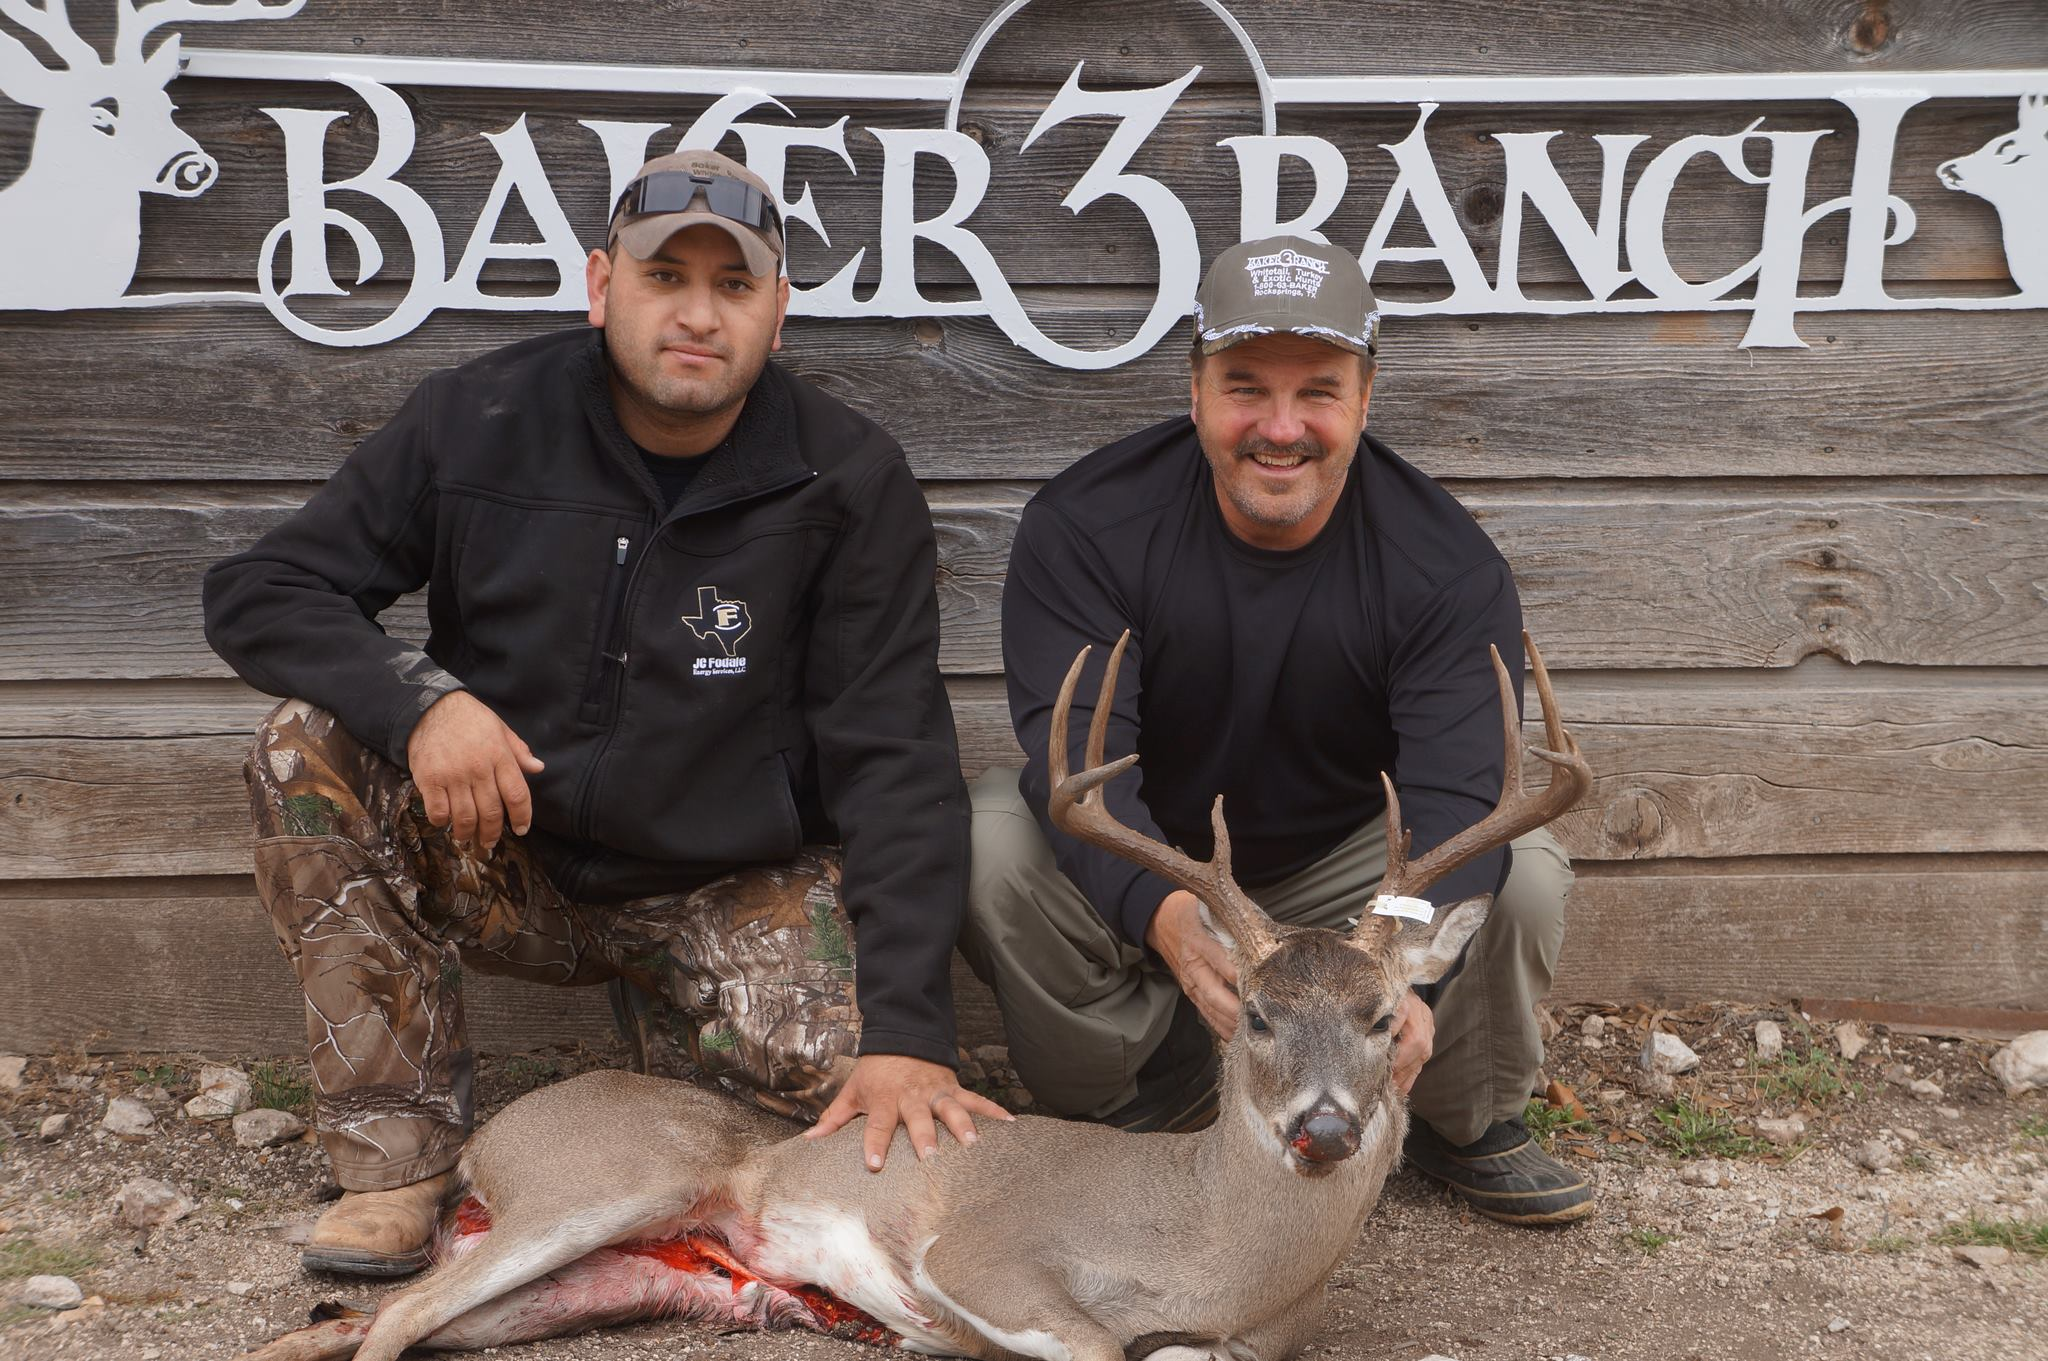 2 hunters and whitetail deer during deer hunt